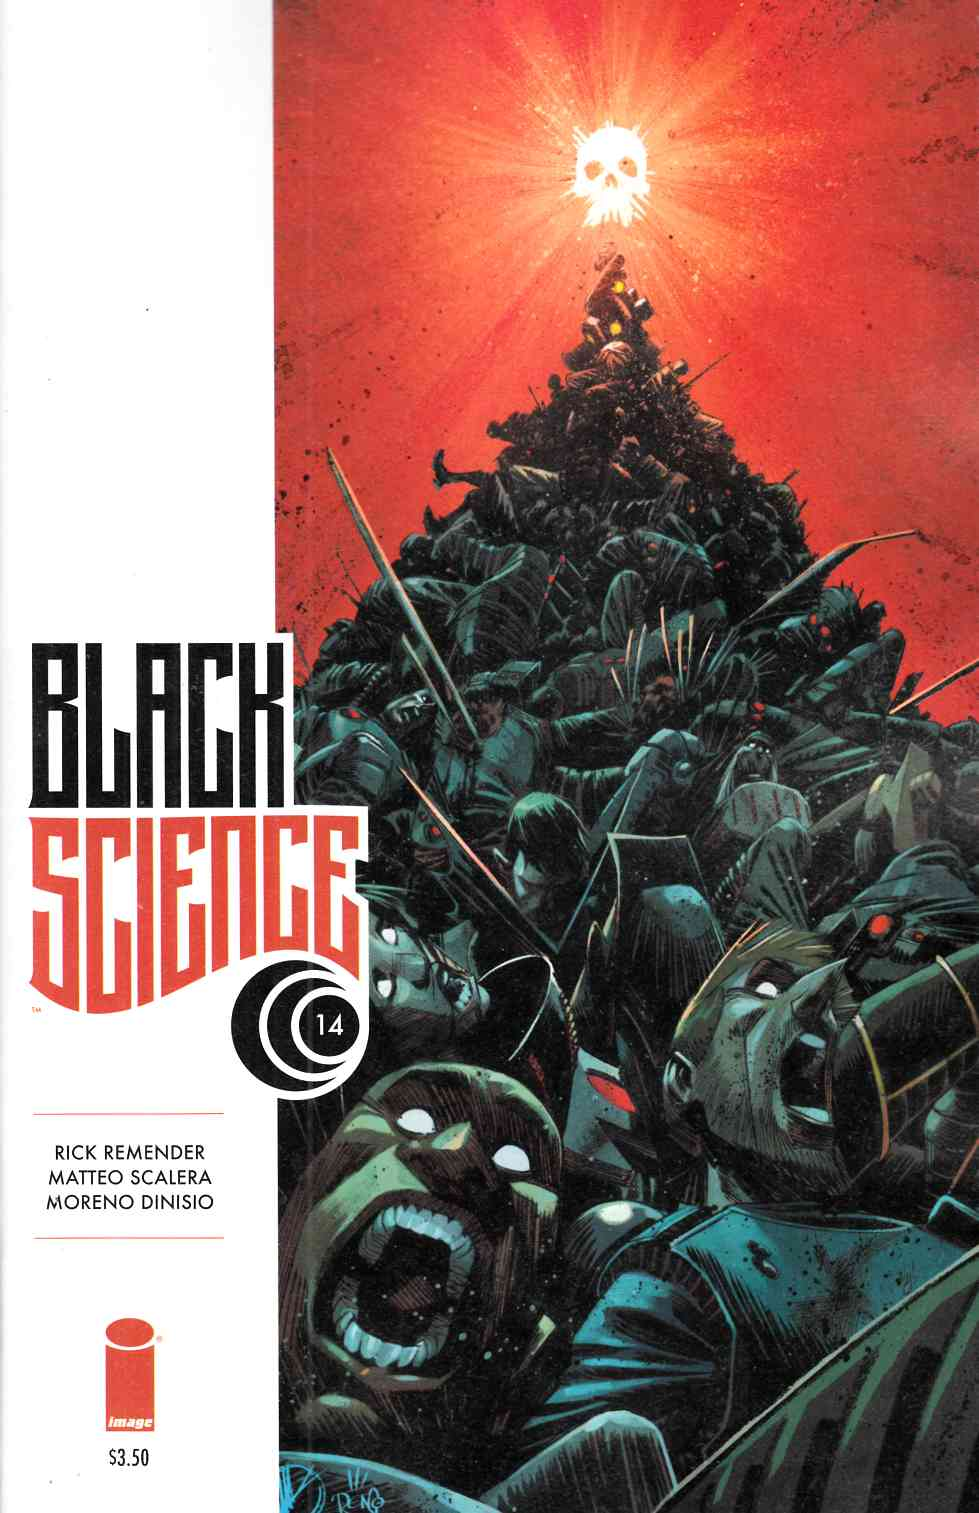 Black Science #14 [Image Comic] LARGE